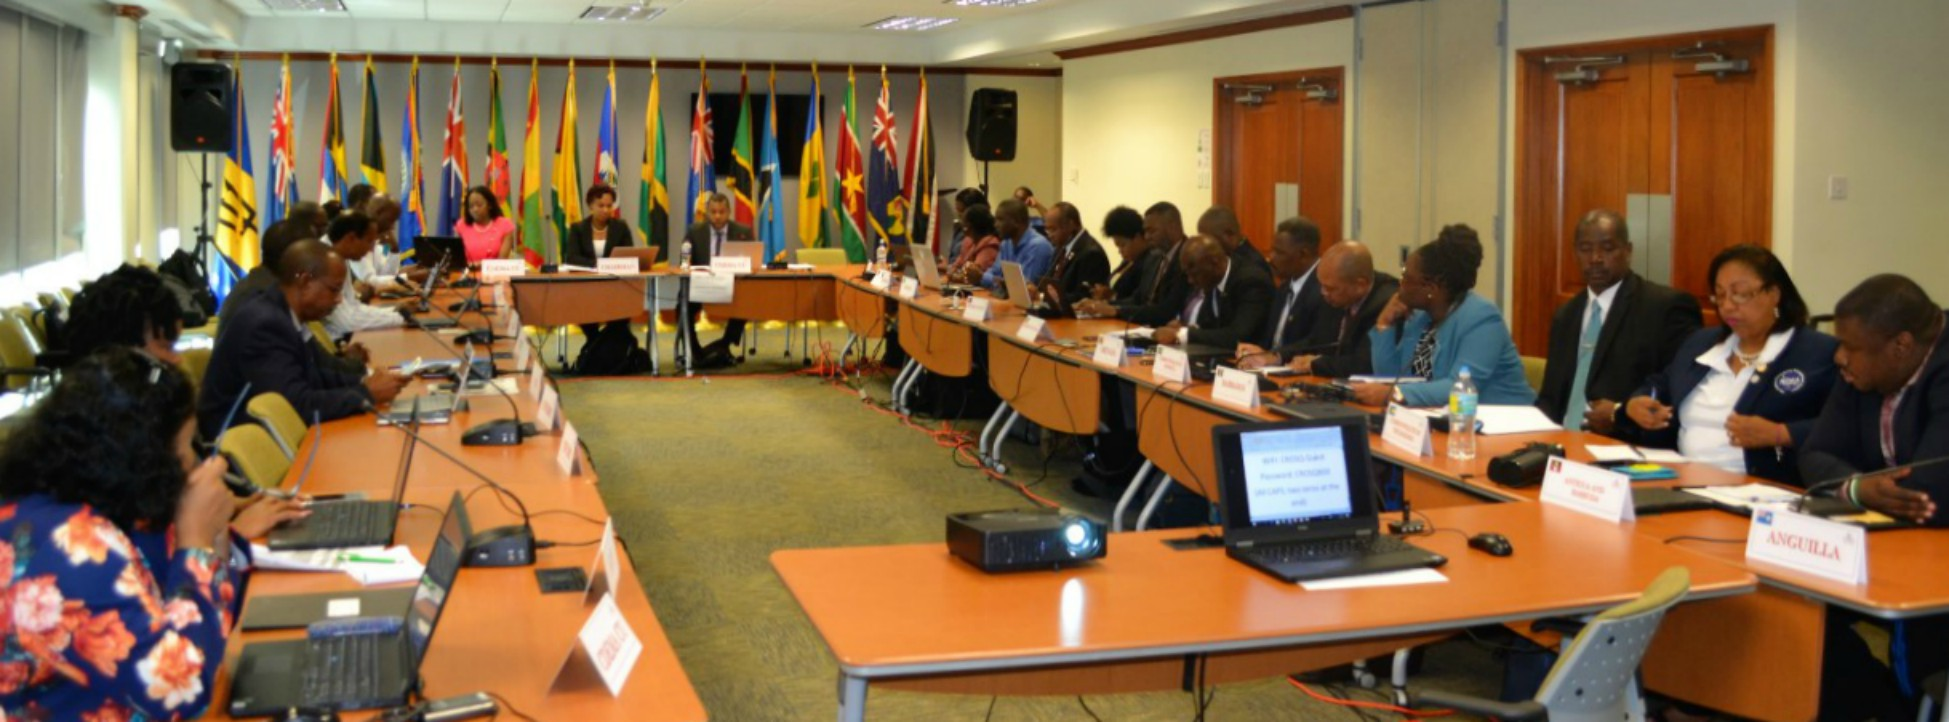 Technical Advisory Committee of CDEMA during their roundtable discussions.